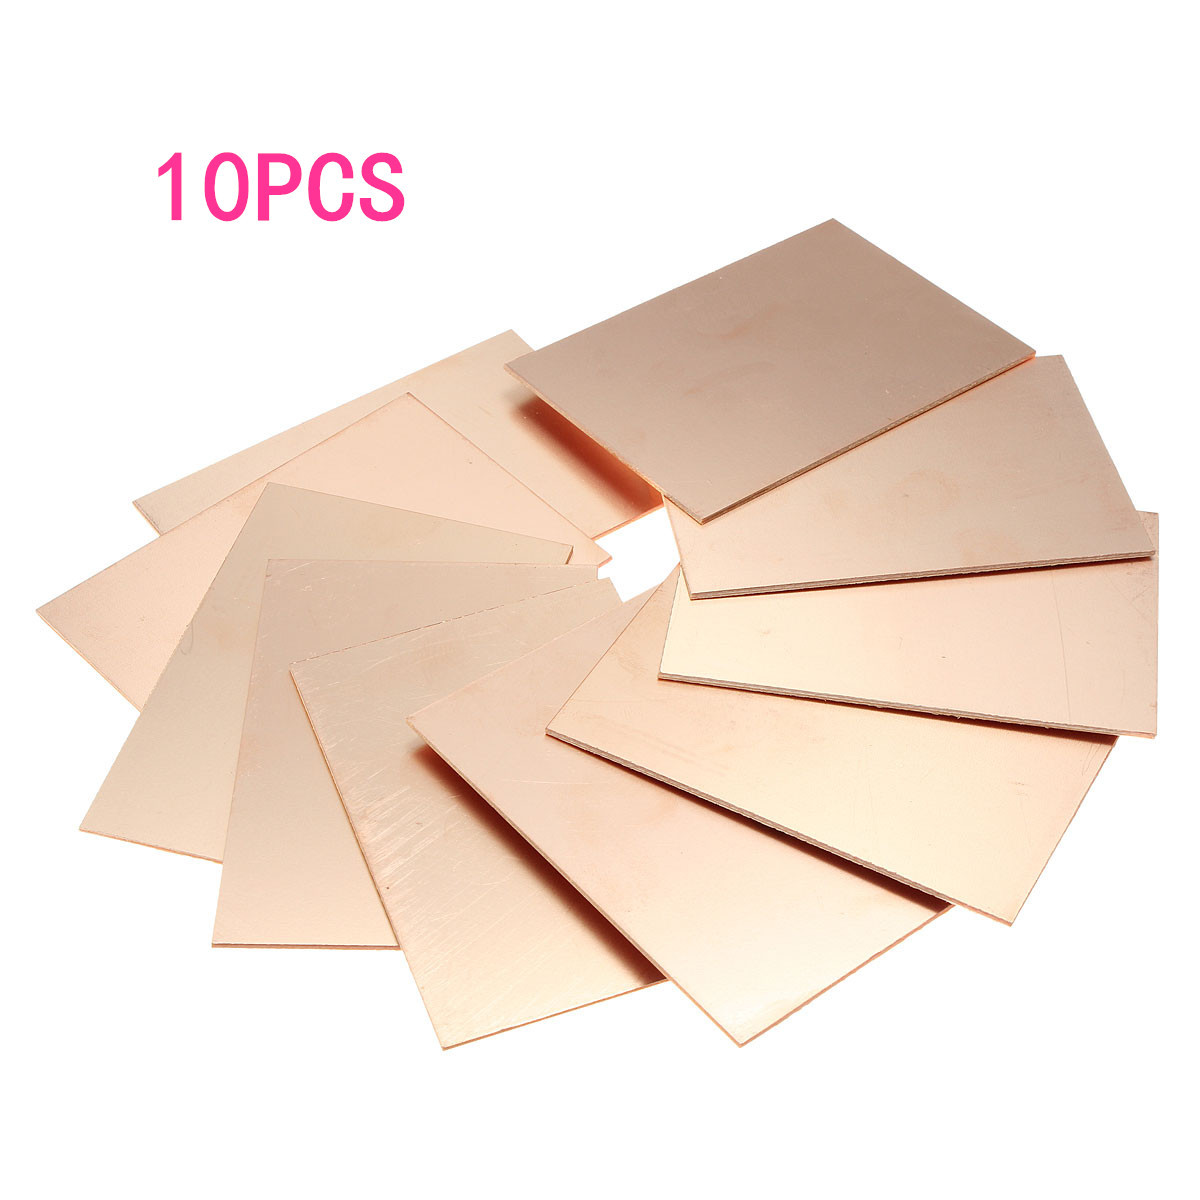 Single-sided Pcb Hot Best Promotion 10pcs/lot Fr4 Pcb Single Side Copper Clad Diy Pcb Kit Laminate Circuit Board 70x100x1.5mm Fr4 Pcb Board Elegant Appearance Passive Components